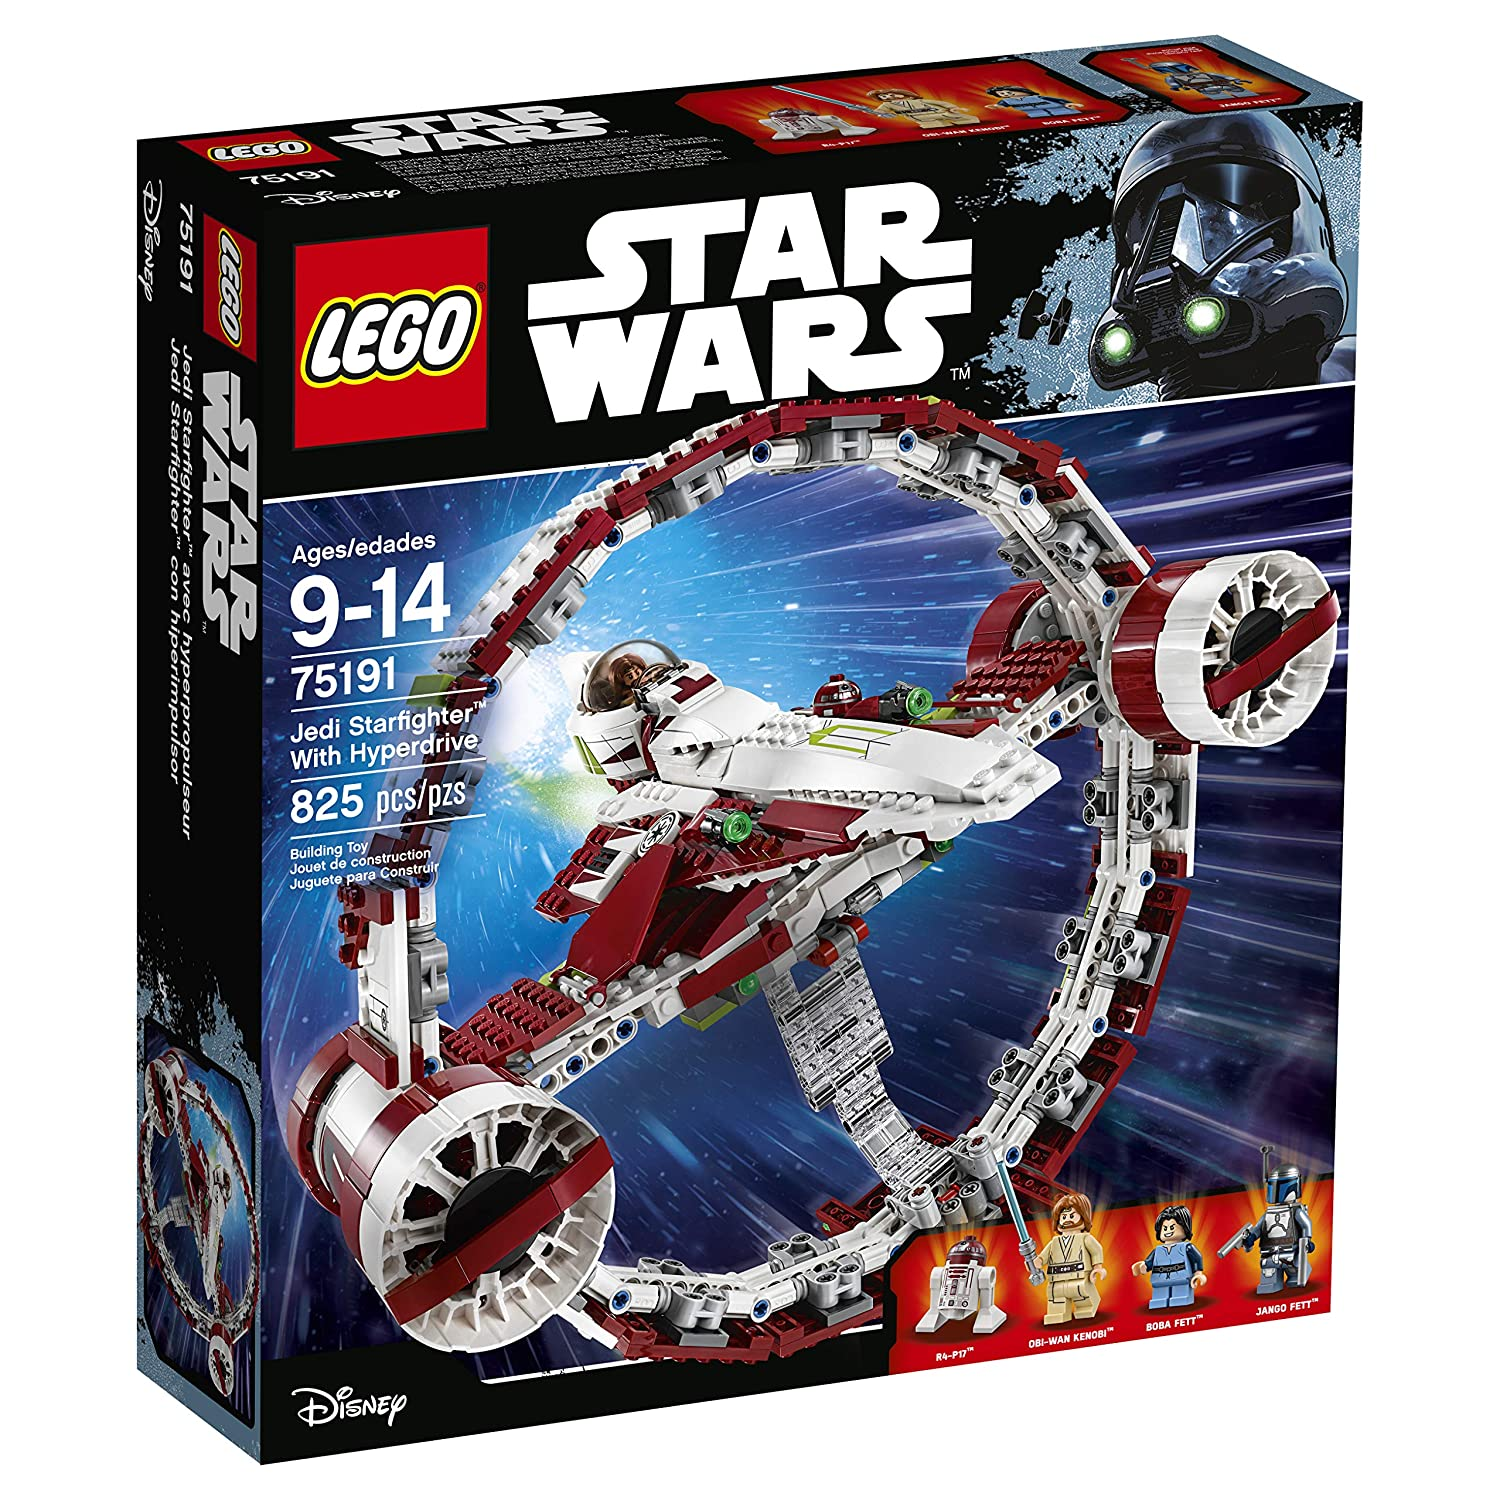 Lego star wars 75191 jedi starfighter with hyper drive construction jouets amazon fr jeux et jouets